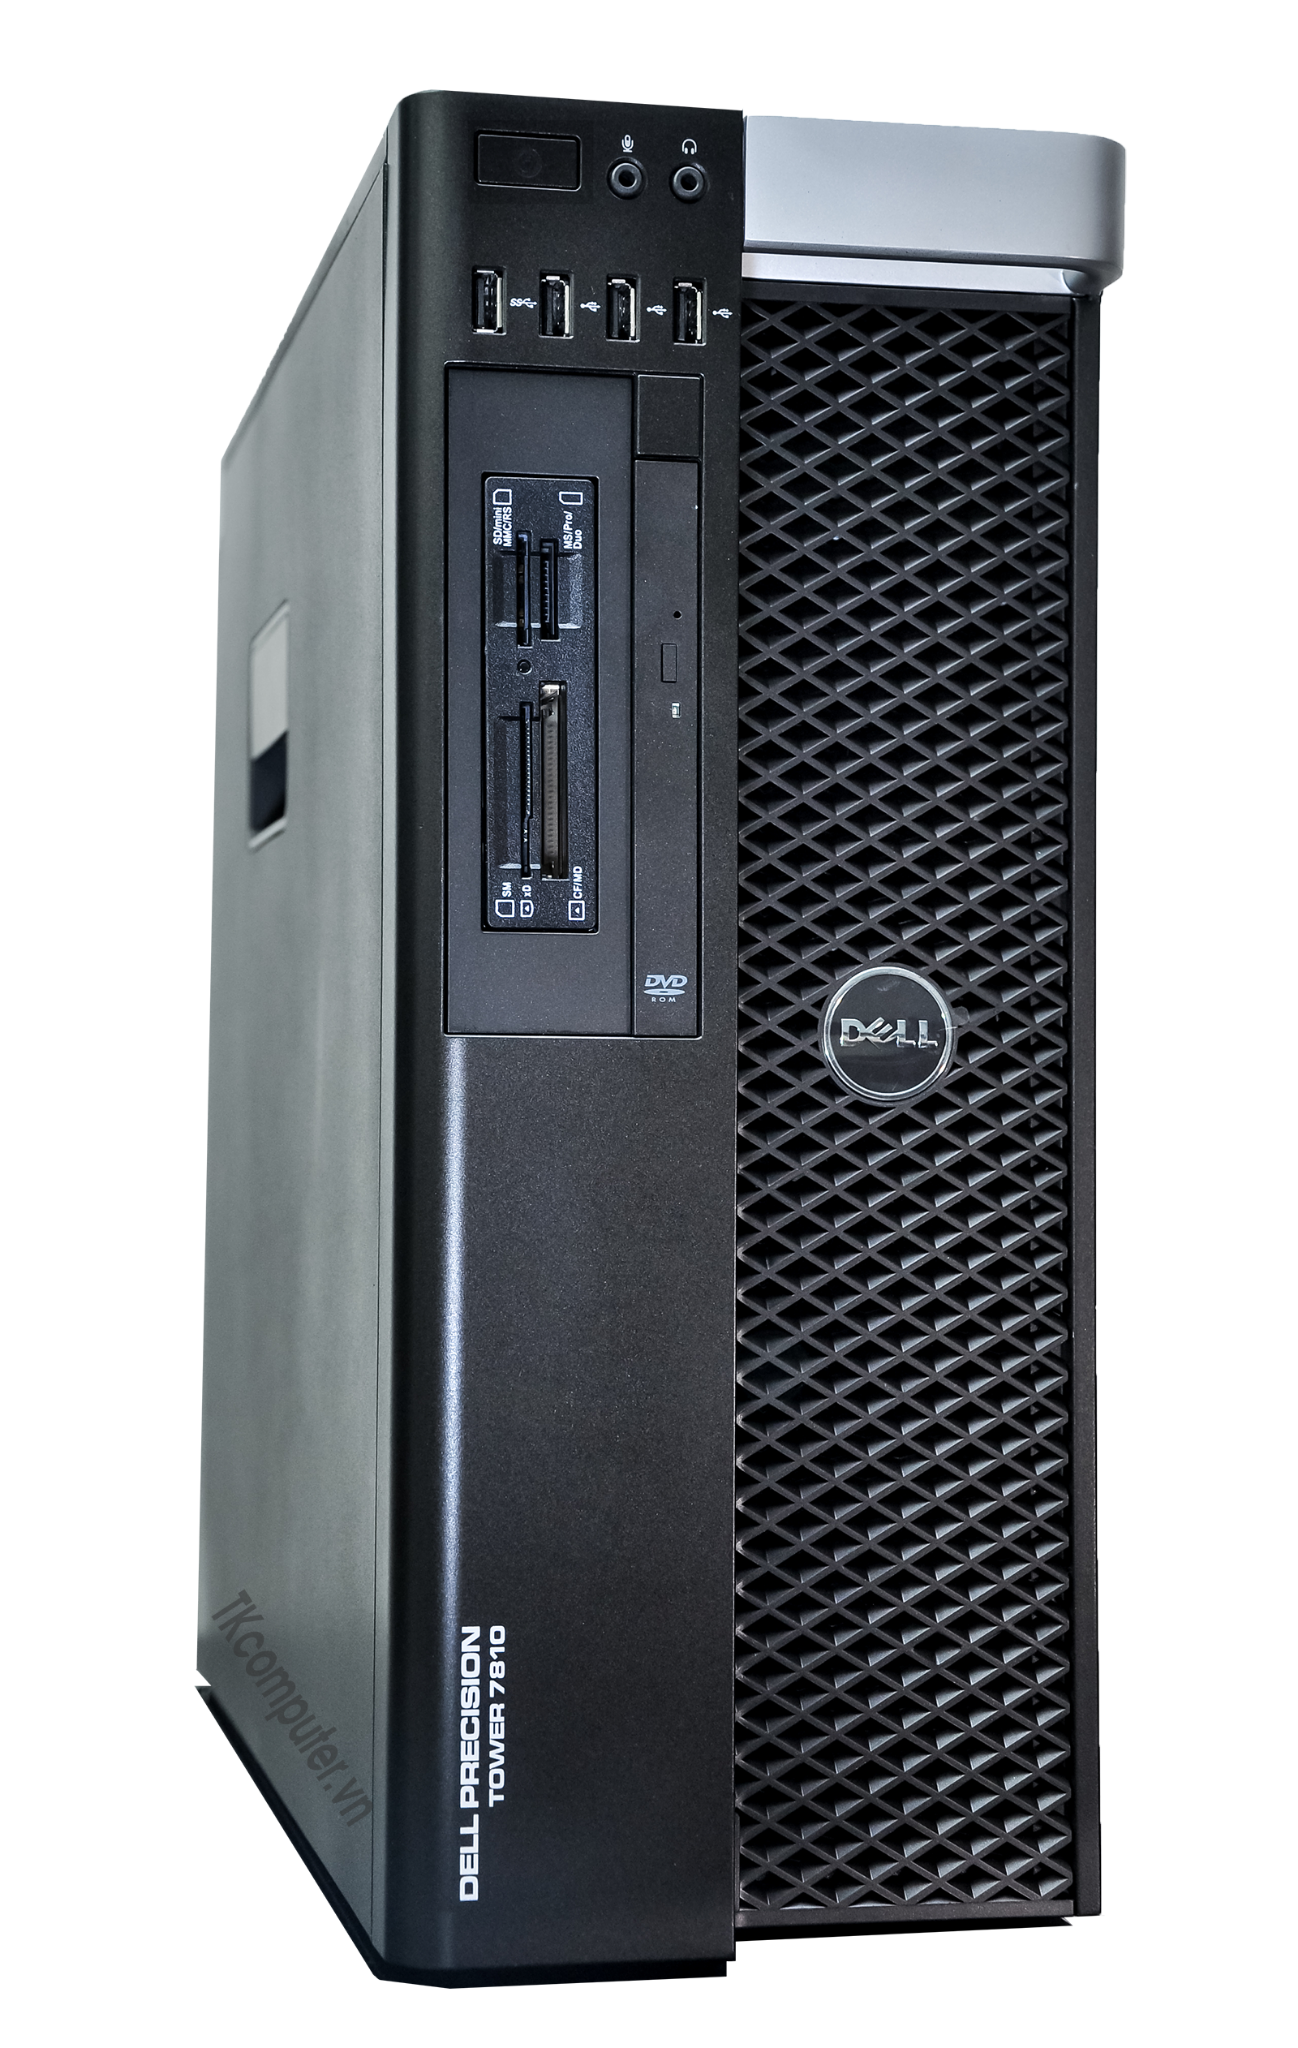 Dell Outlet New Precision T7810; 02 CPU E5-2620V3 2.4GHz/24  CPU/32GB/SSD 192GB/HDD 1TB/Quadro K620 2 GB